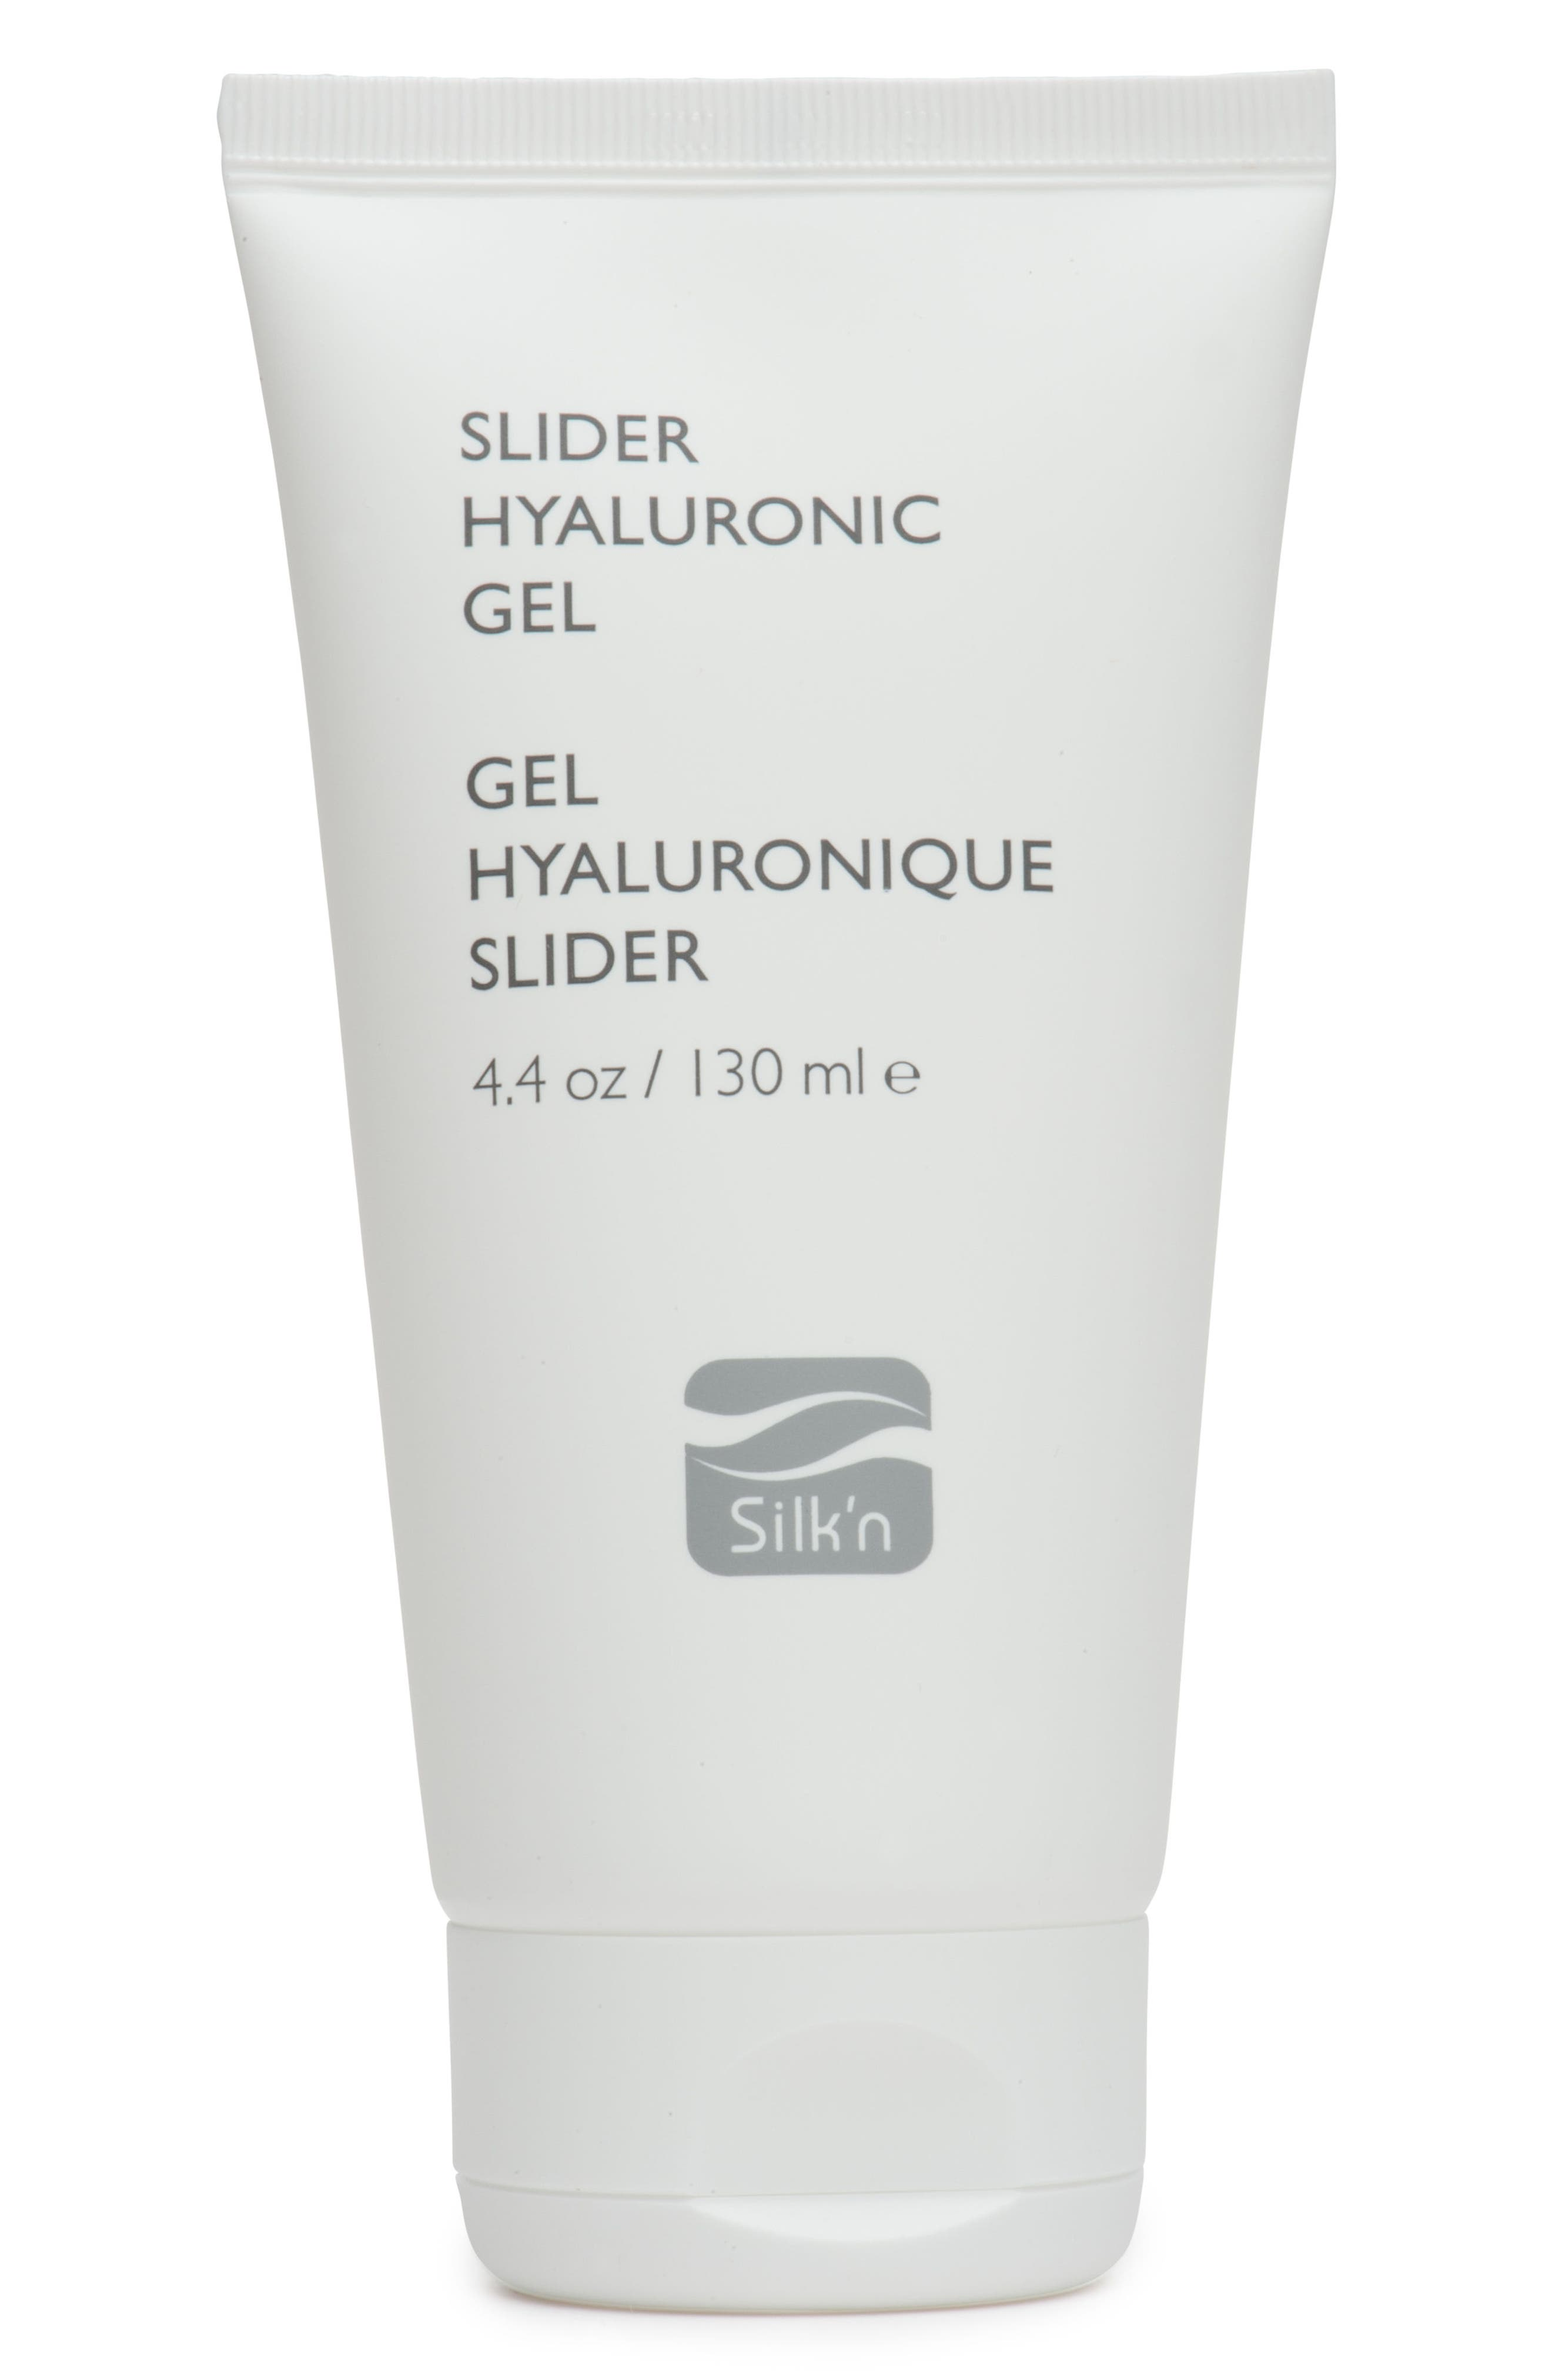 Silk'n Slider Hyaluronic Gel